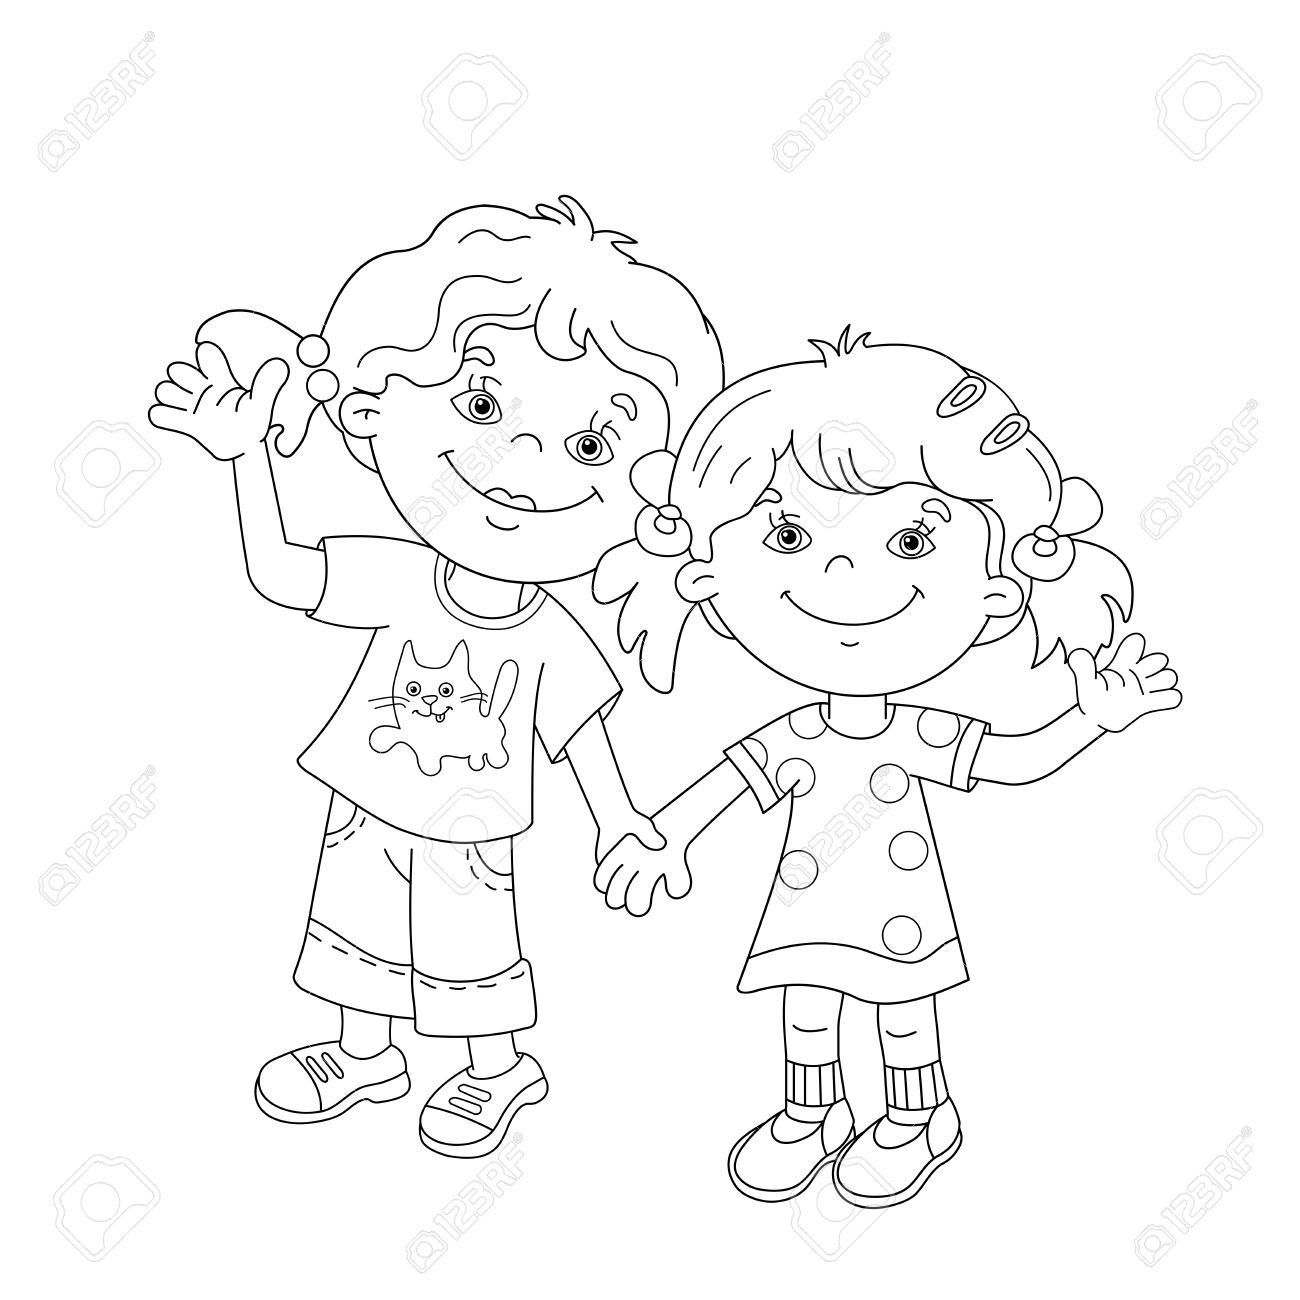 Coloring Page Outline Of Cartoon Girls Holding Hands Coloring